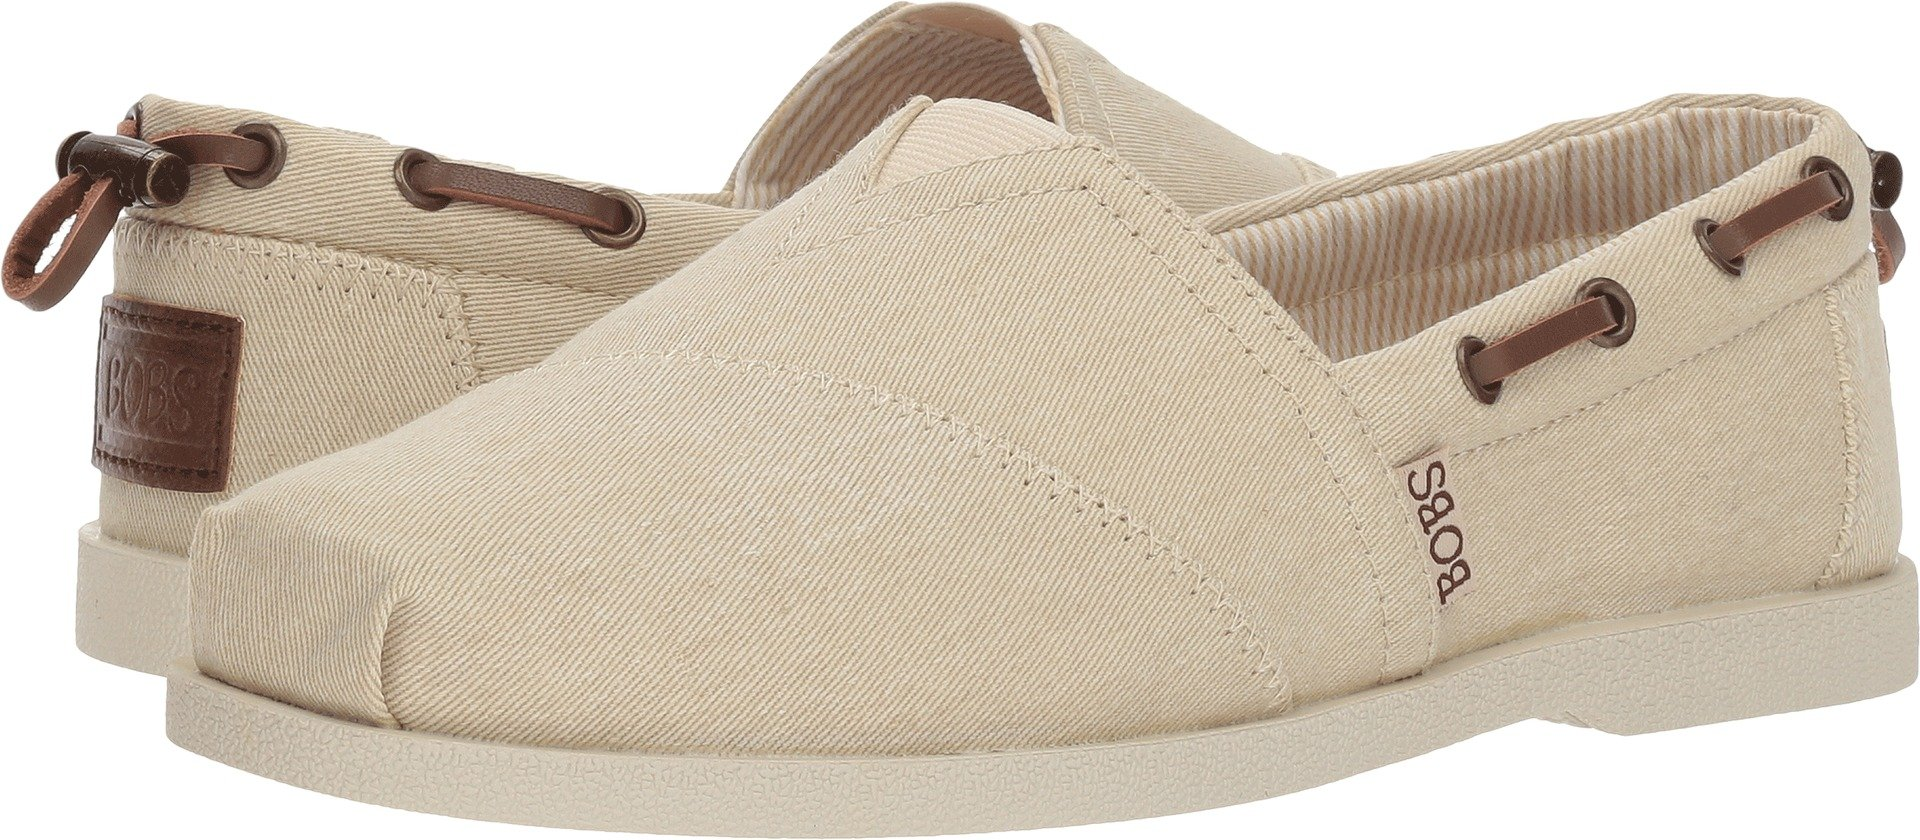 Skechers BOBS from Women's Chill Luxe - Fancy Me Natural 6.5 B US